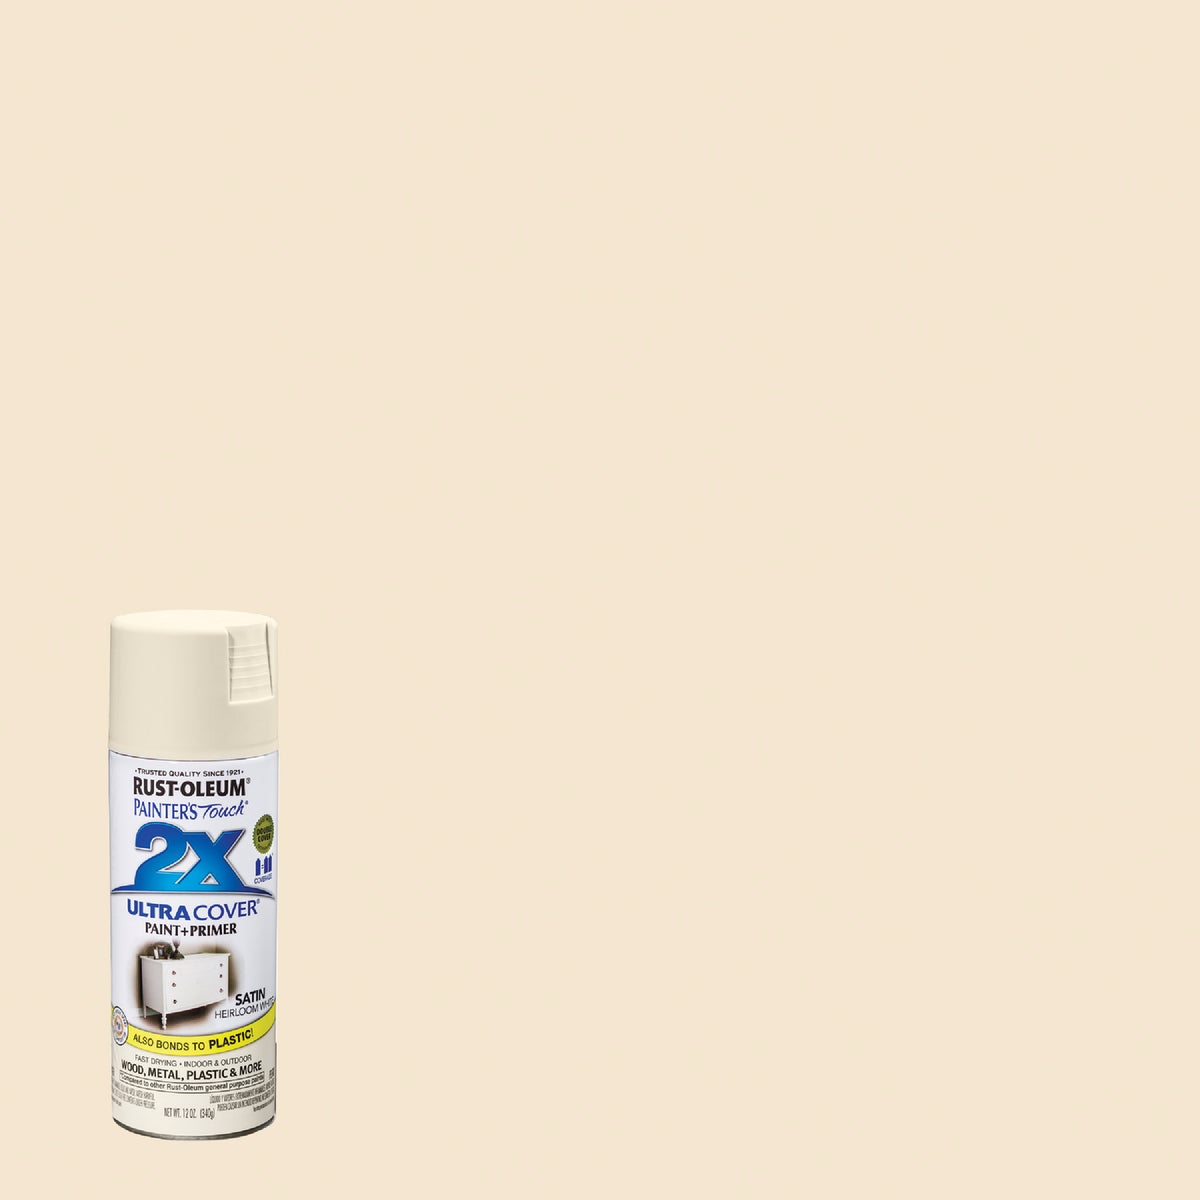 H WHT SAT SPRAY PAINT - 249076 by Rustoleum